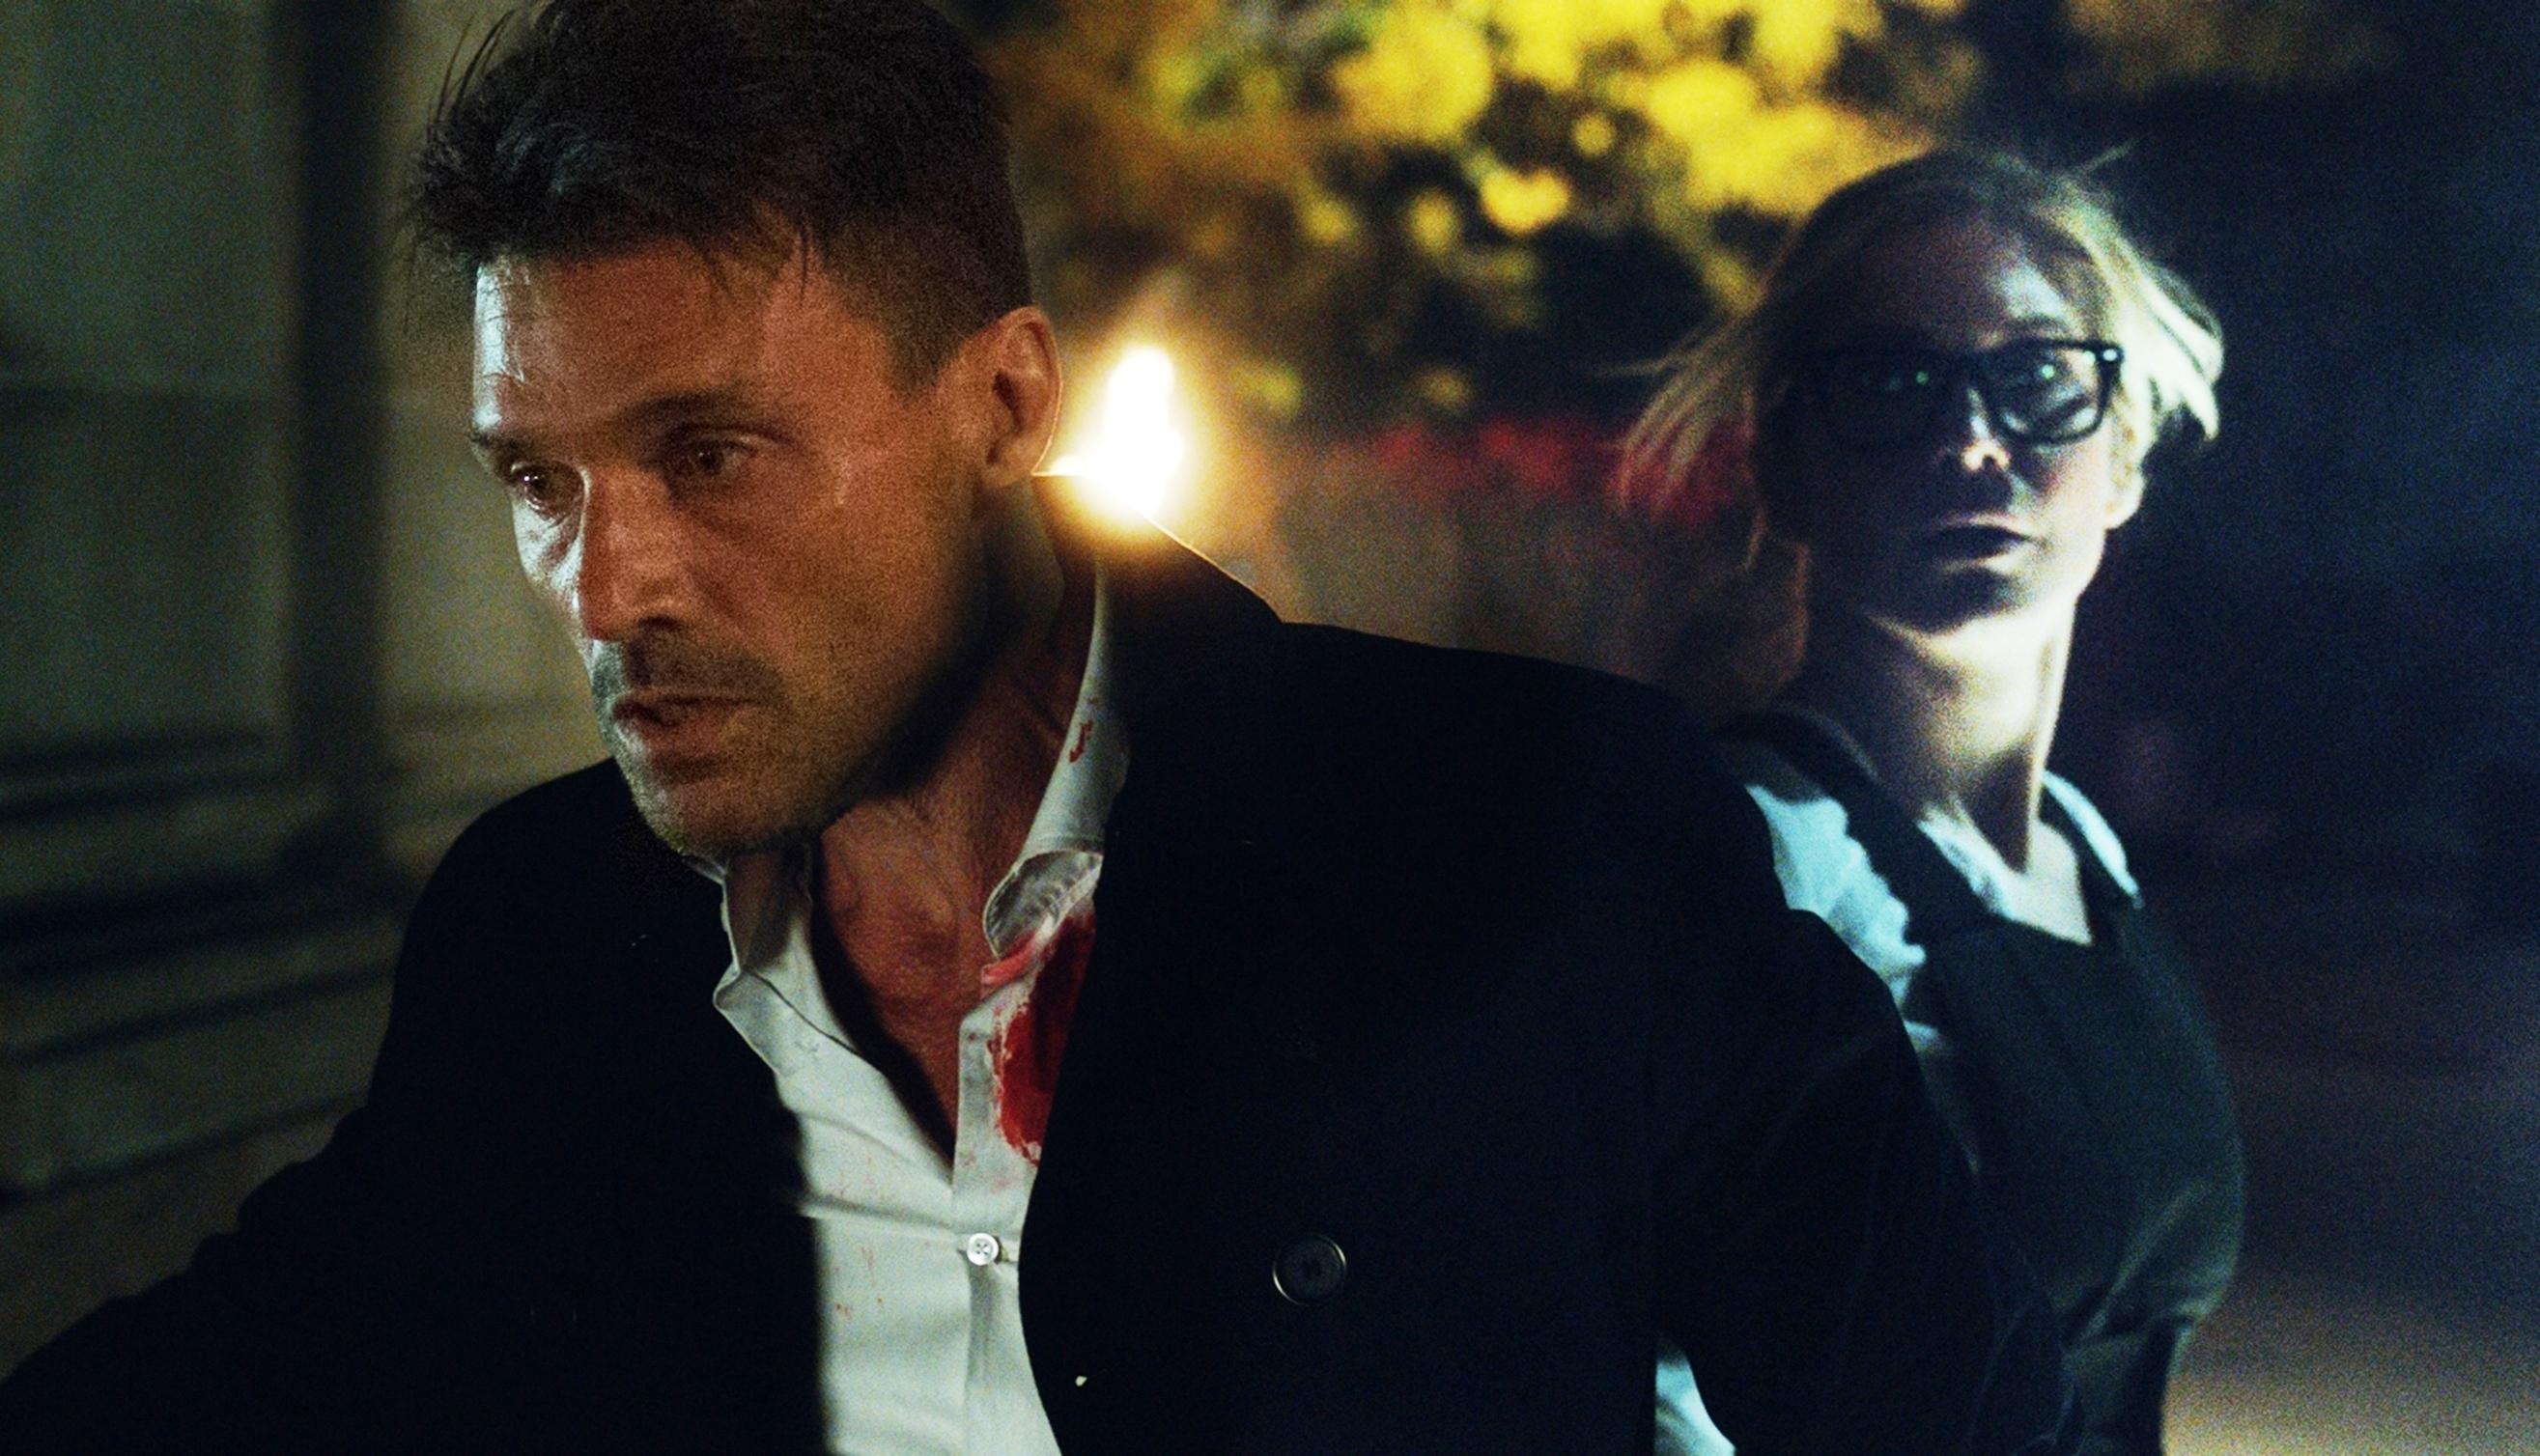 Frank Grillo and Elizabeth Mitchell on the run in The Purge: Election Year.